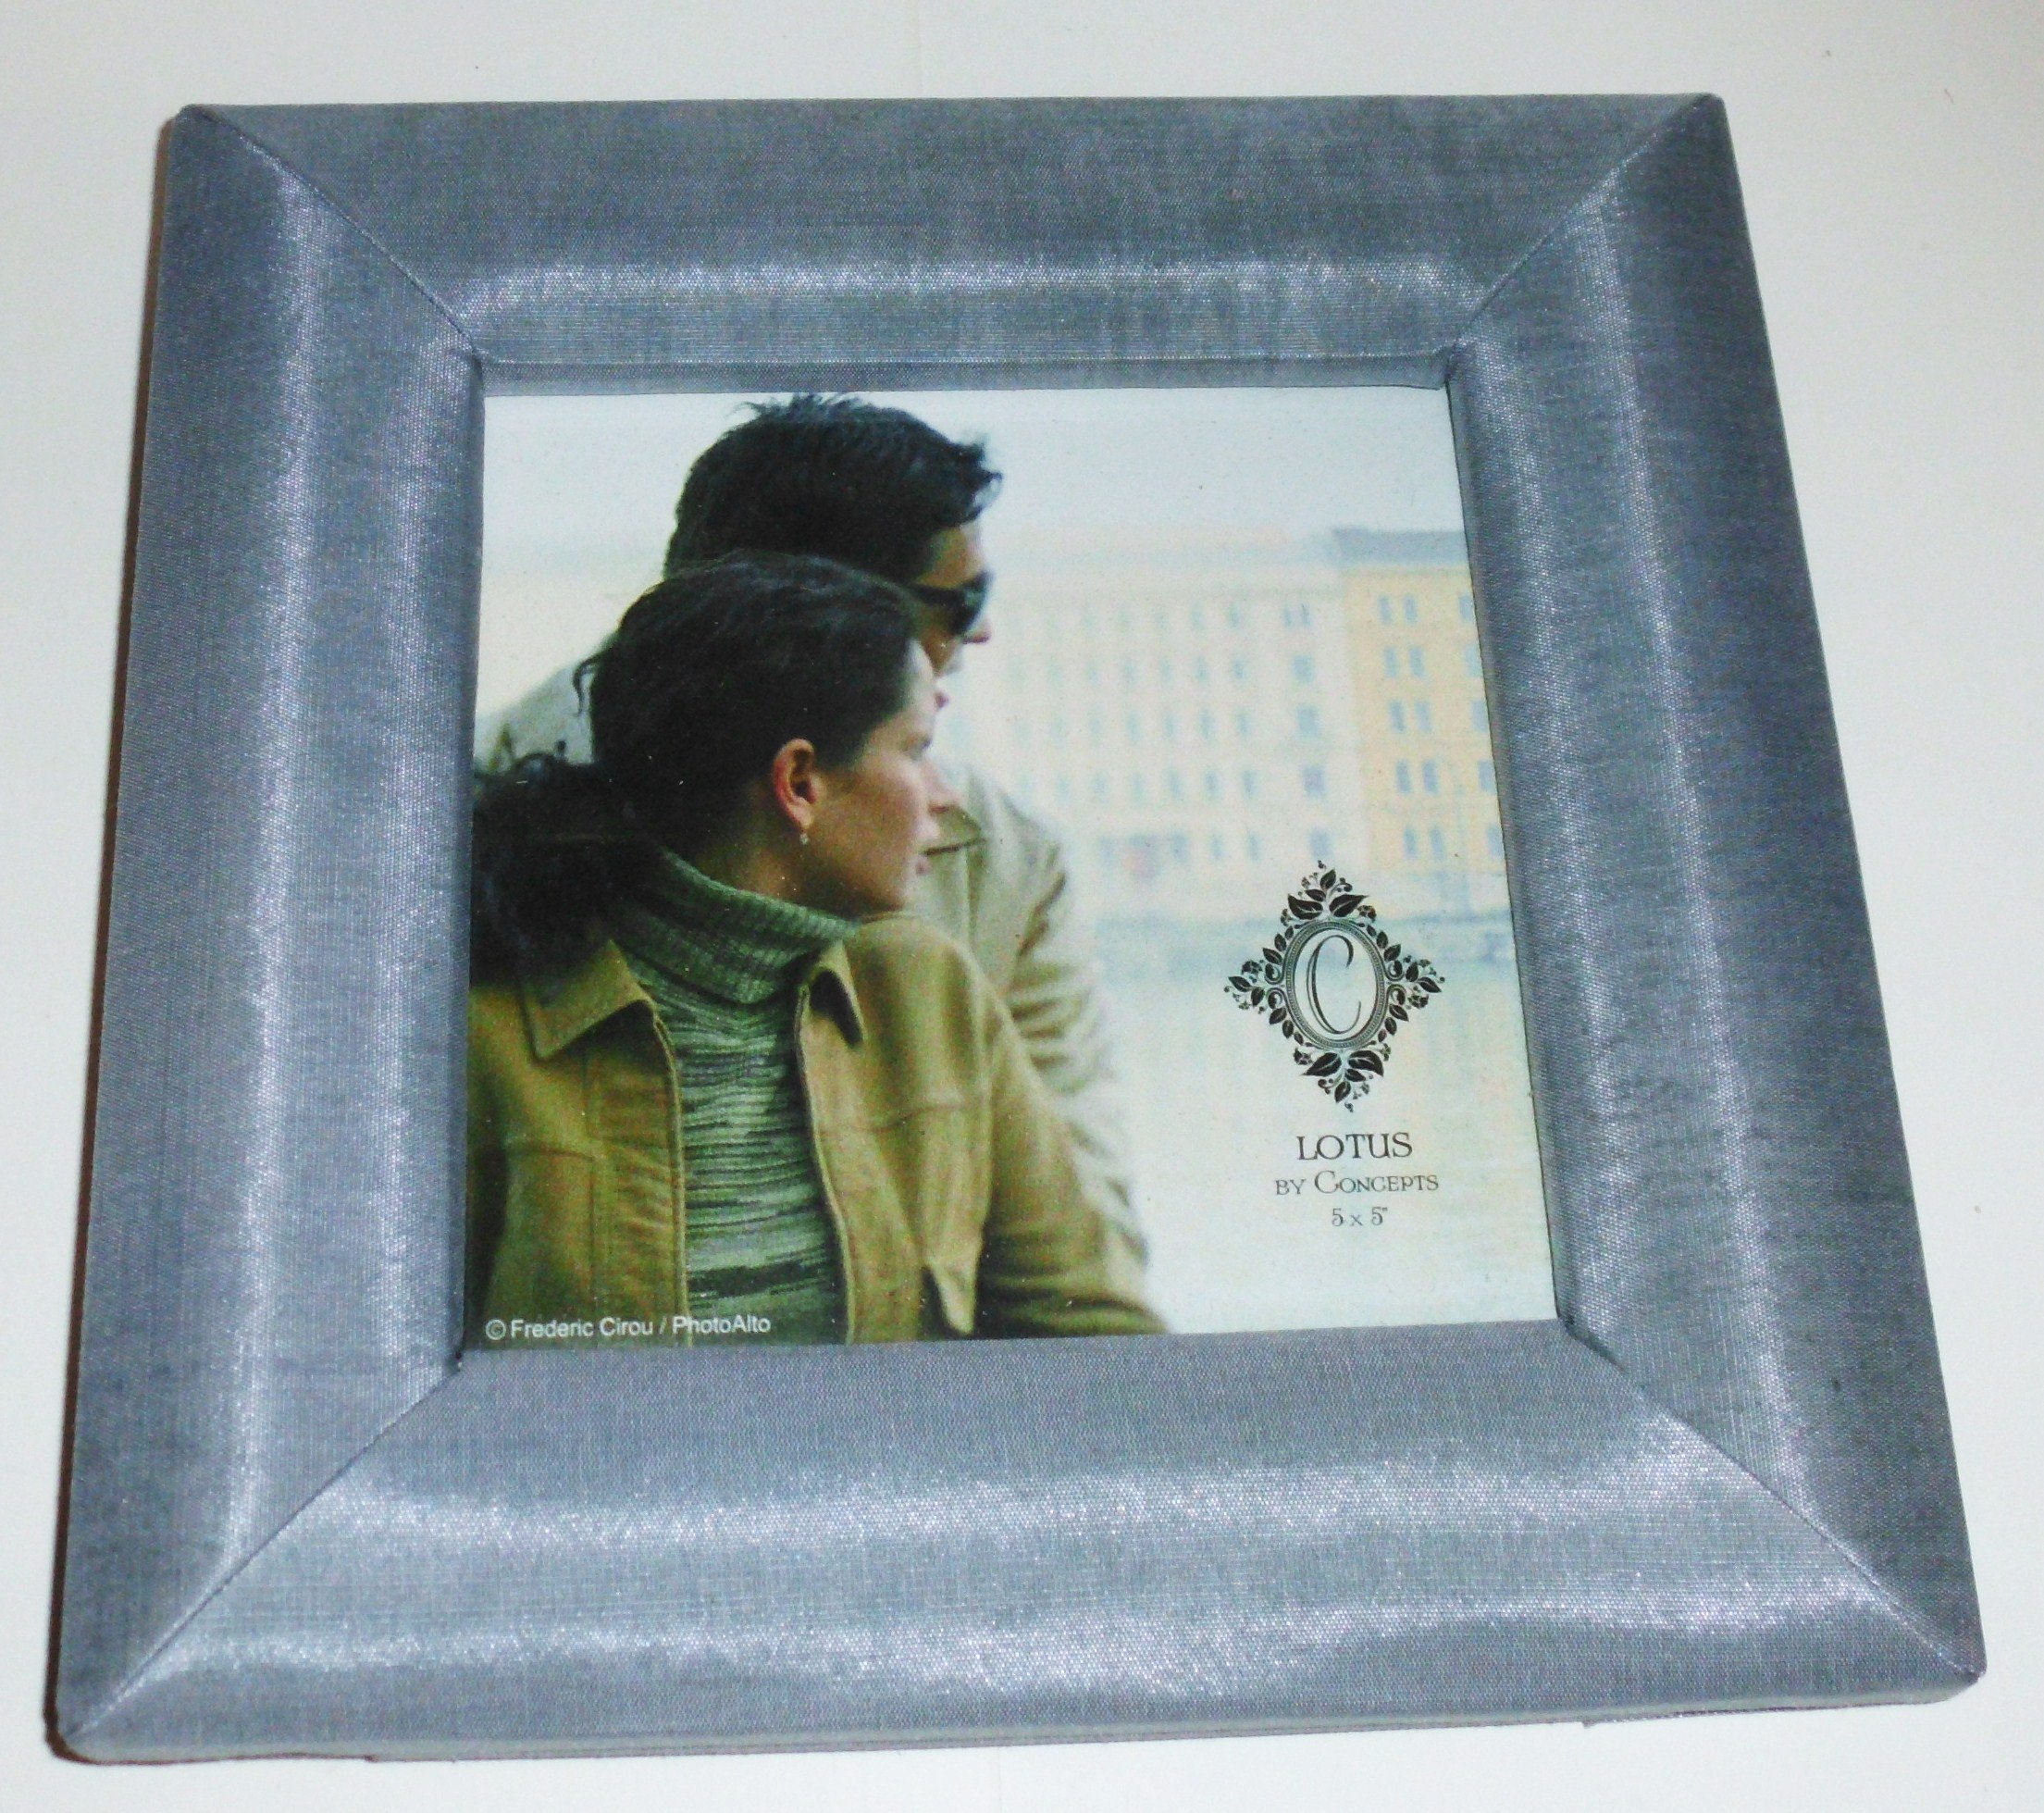 Silver Thai Fabric Picture Frame - 5'' x 5'' - Lotus by Concepts by Lotus / Concepts